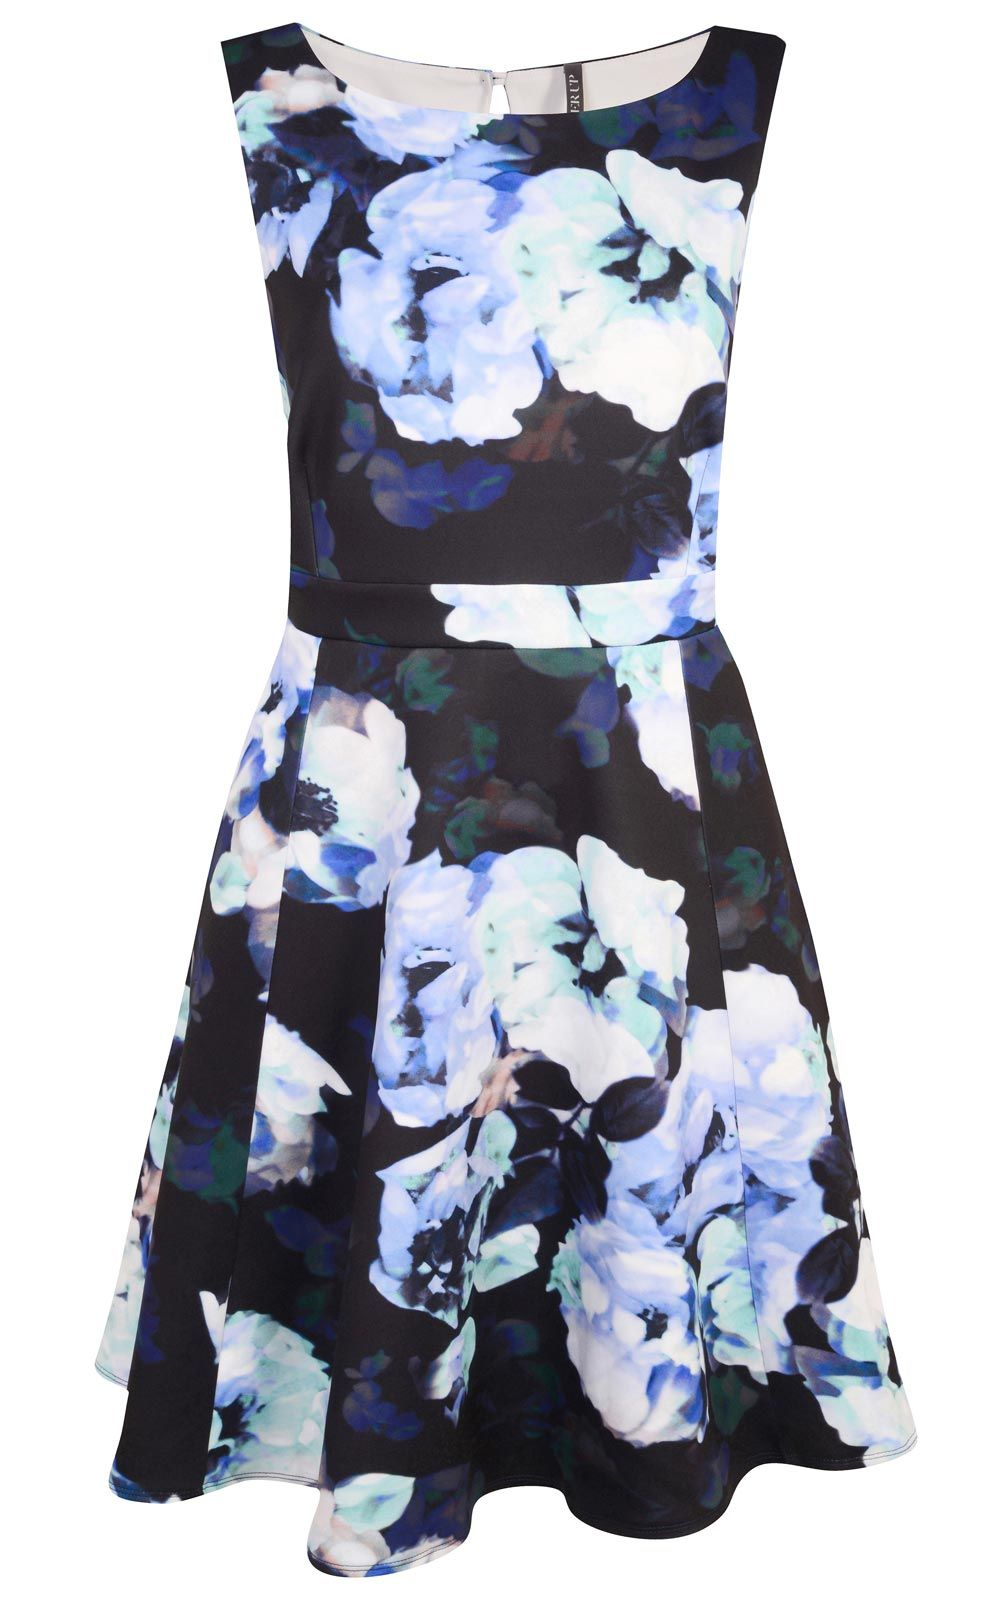 Wedding day guest dresses  This blue floral summer wedding guest dress from Evans  will